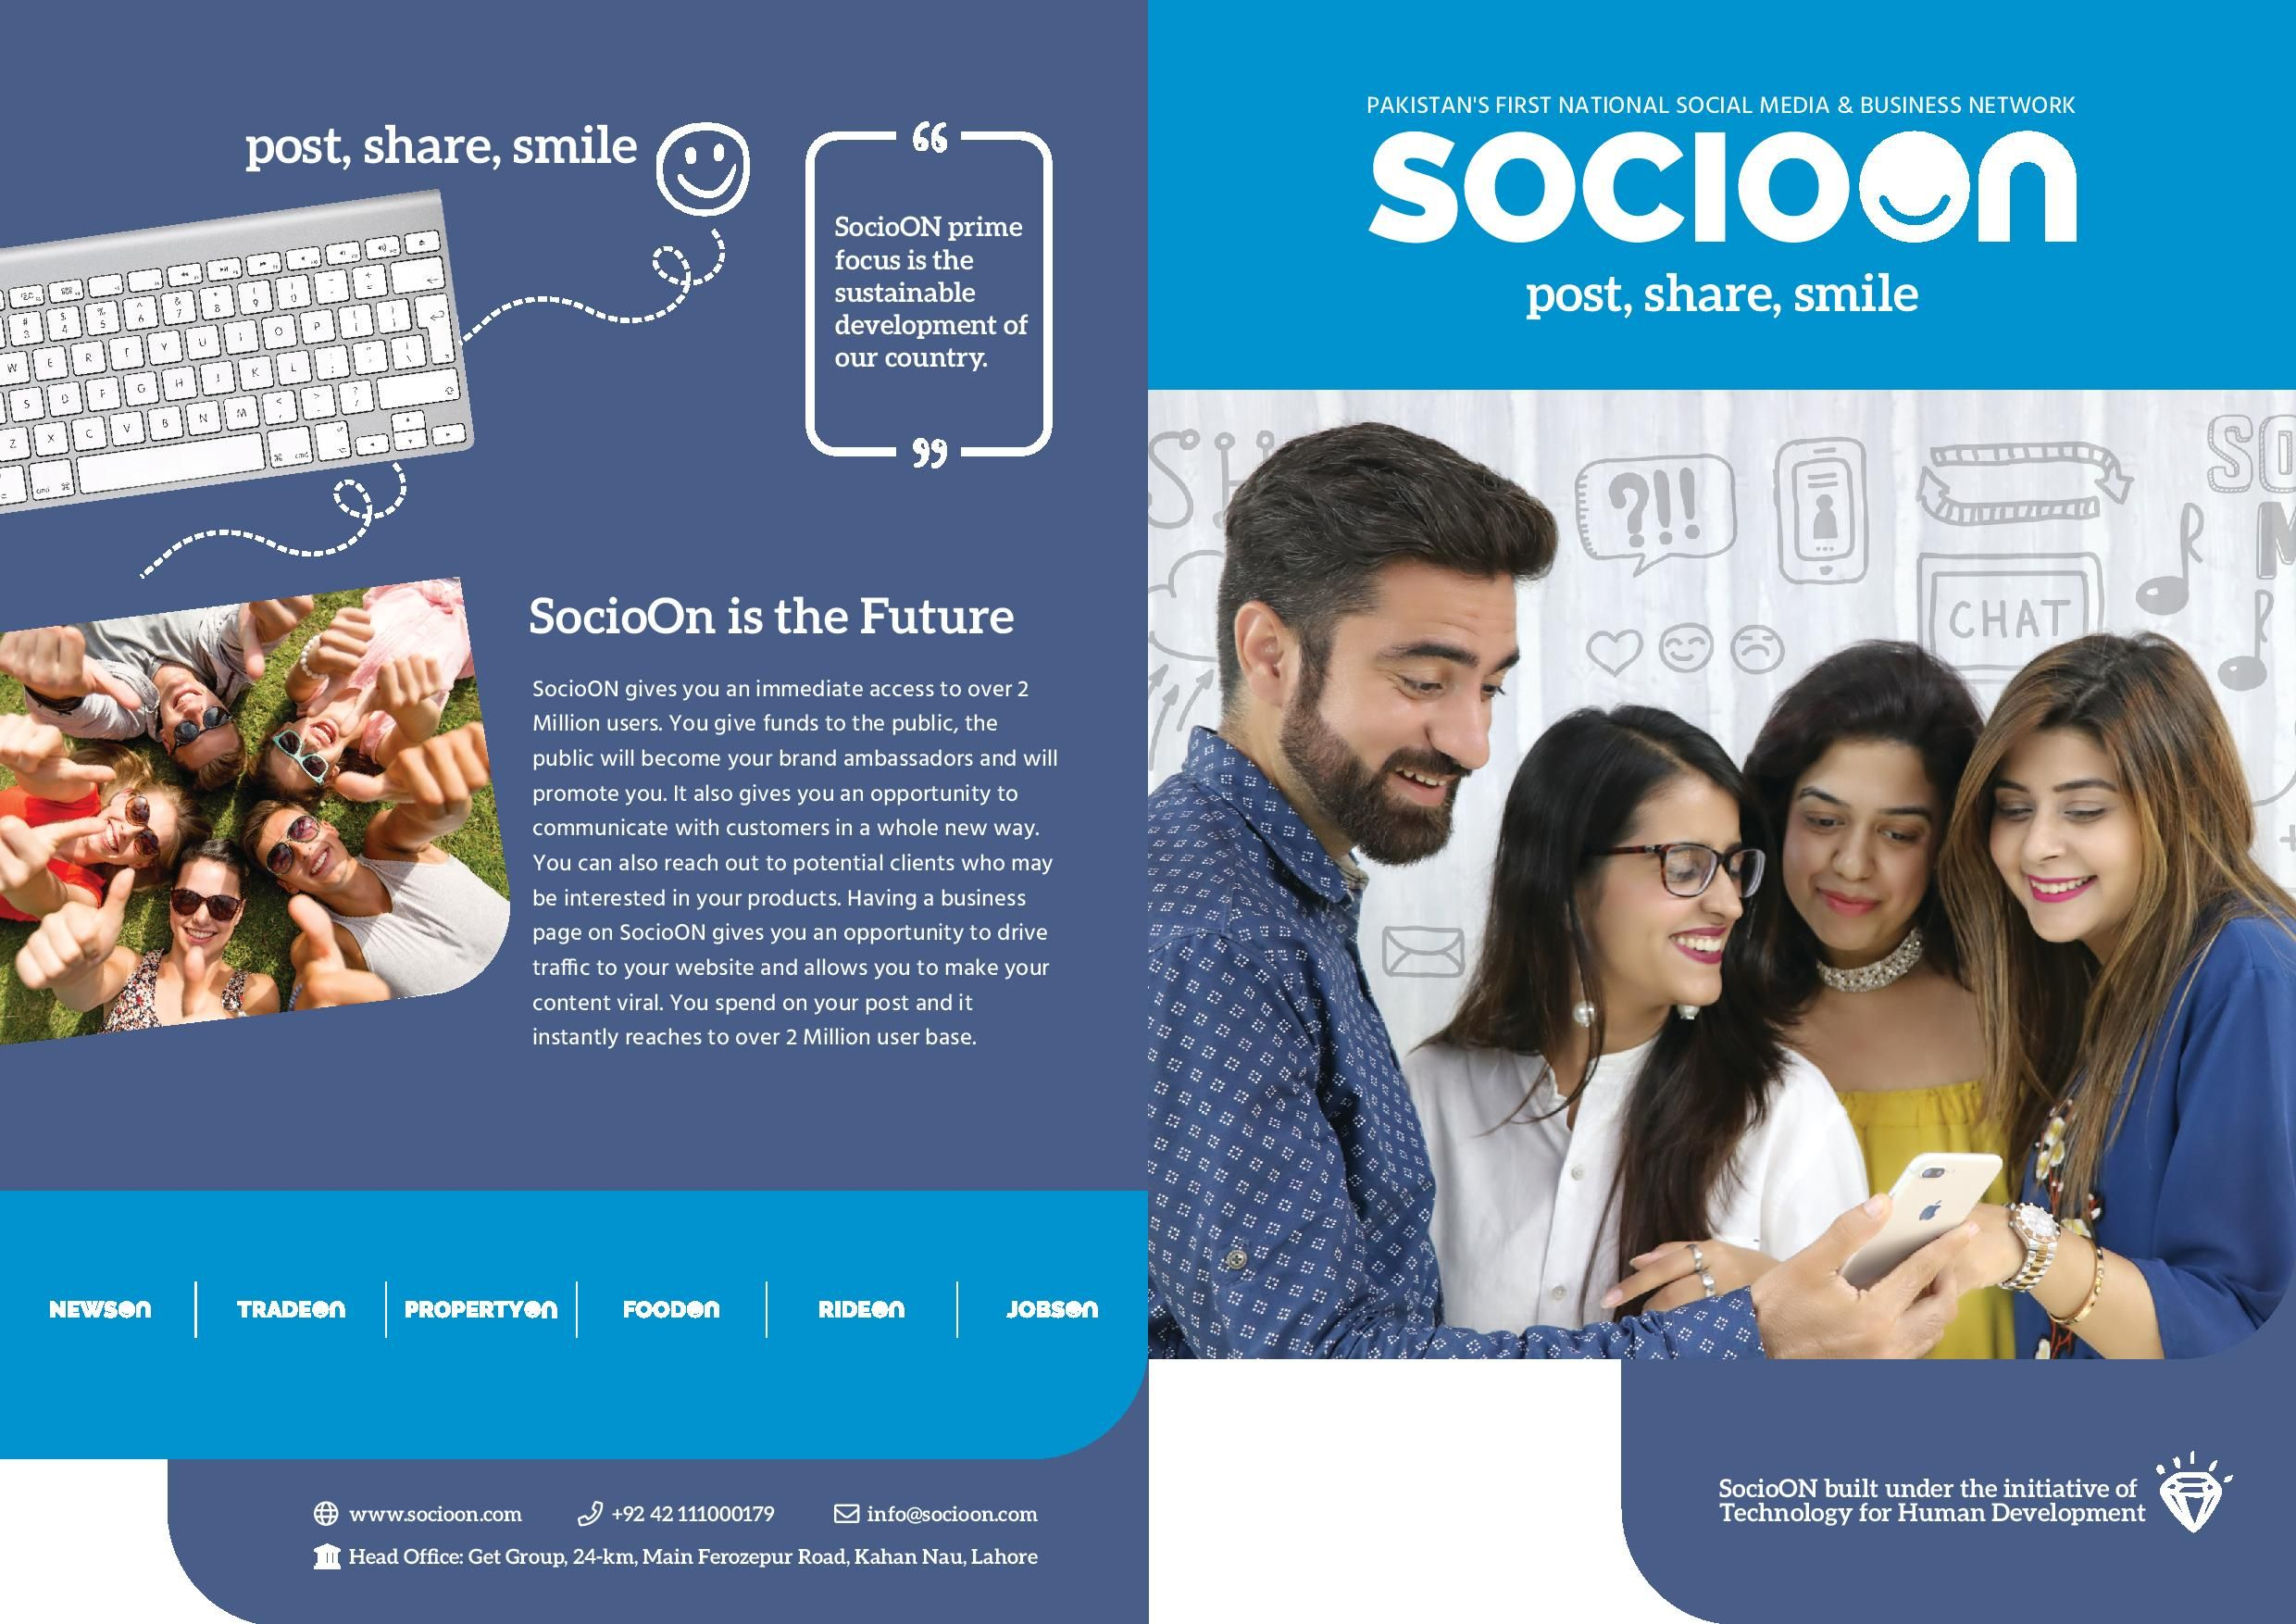 socioon is standing now as a Pakistan first social media